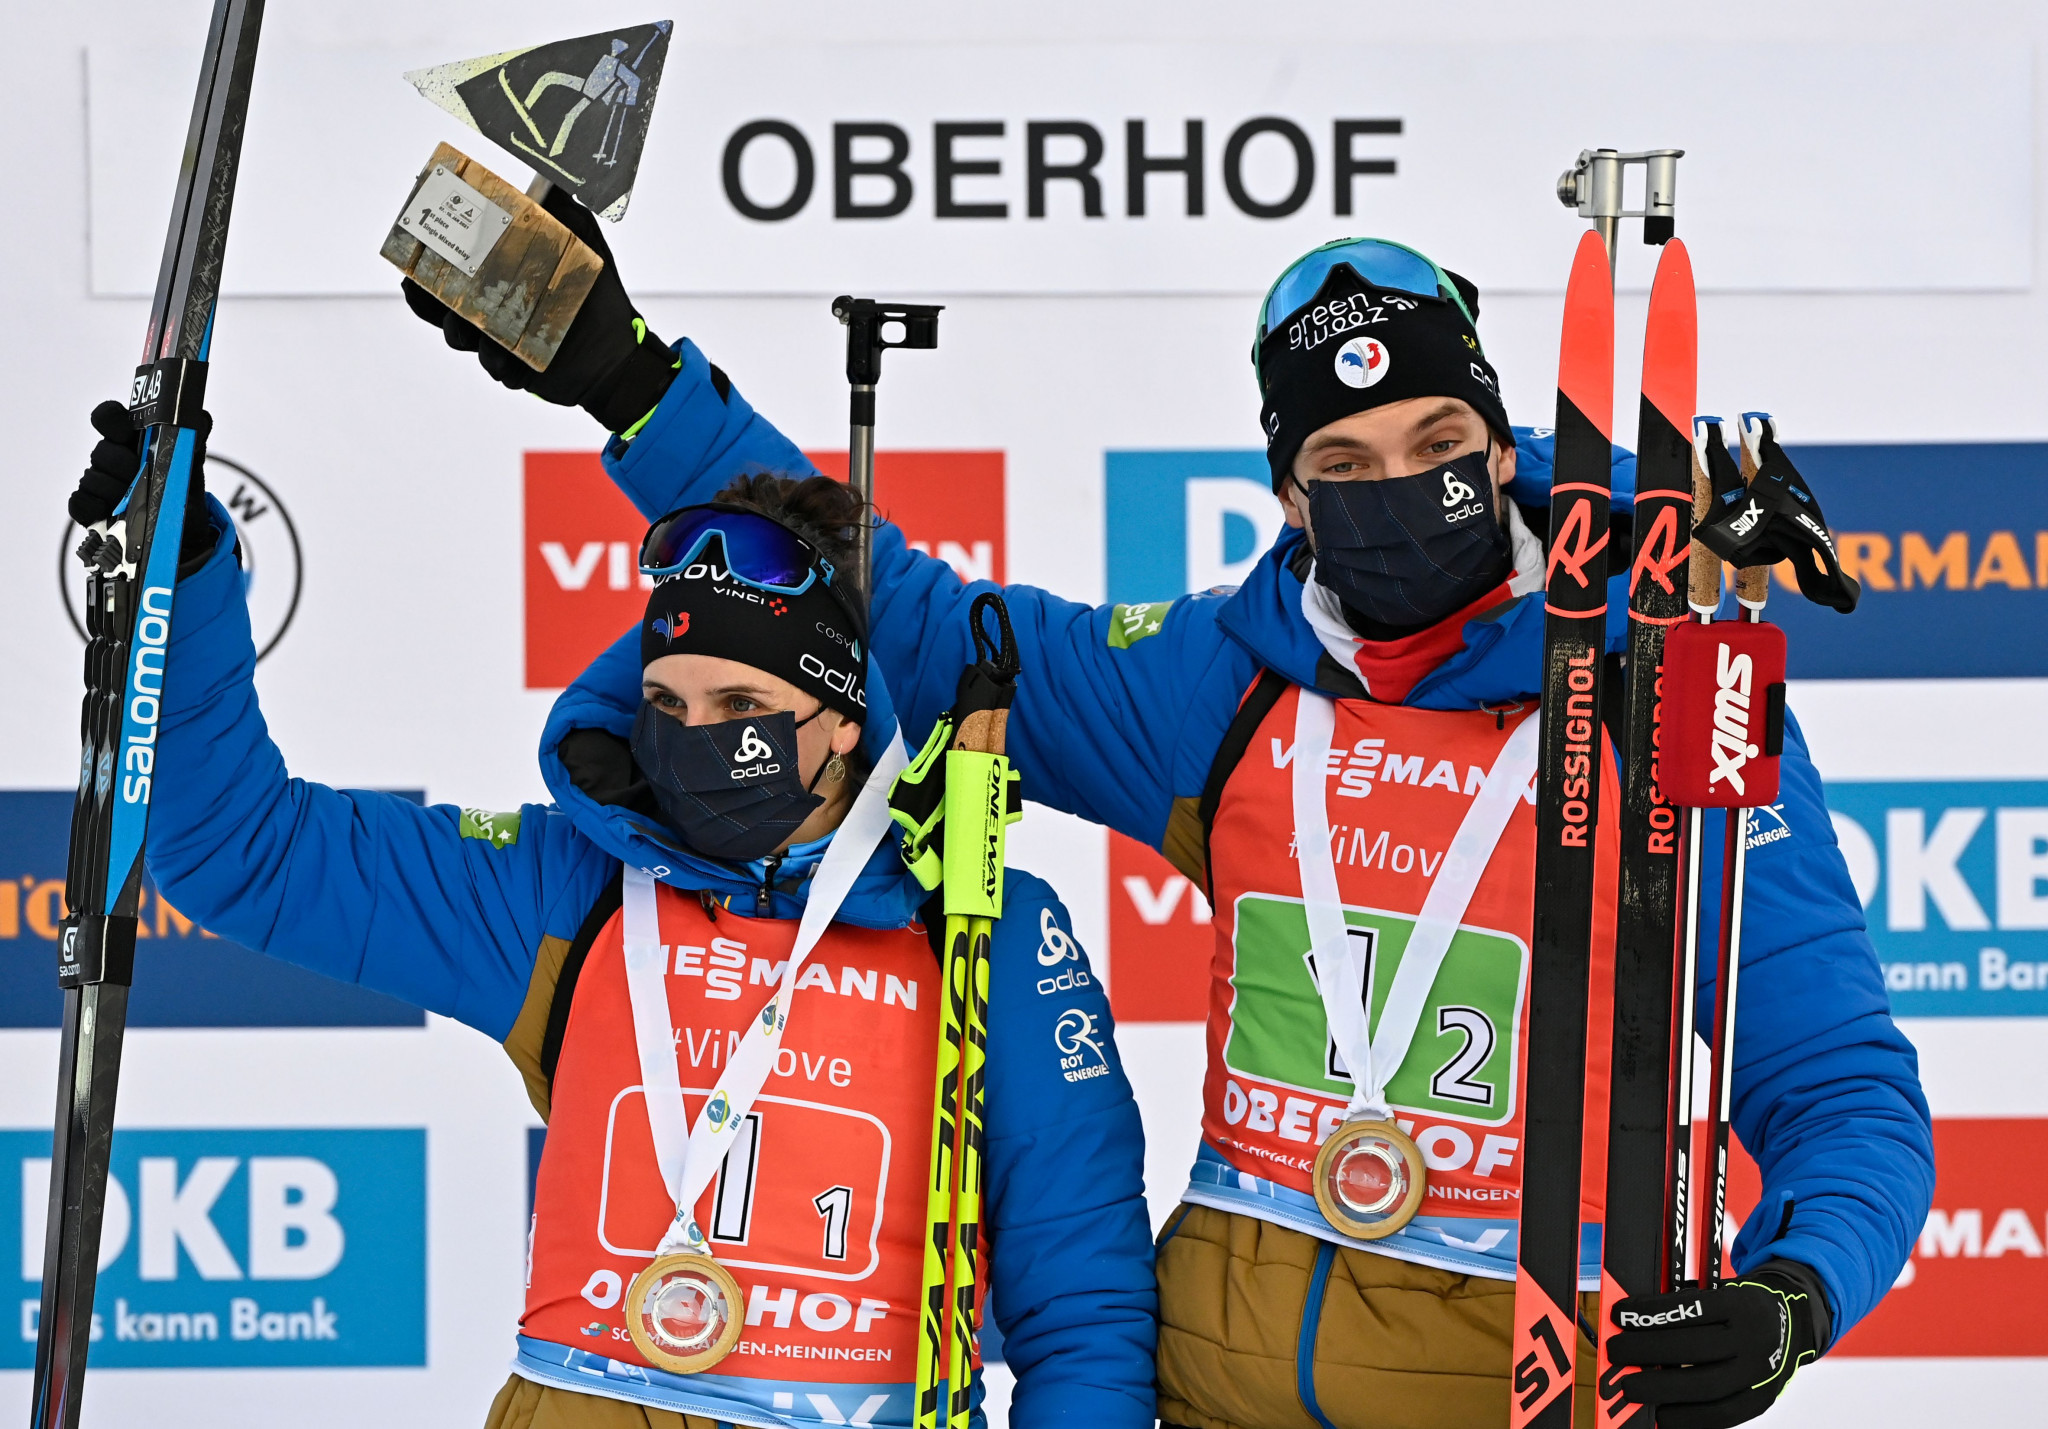 Russia and France win relay events on final day of IBU World Cup in Oberhof